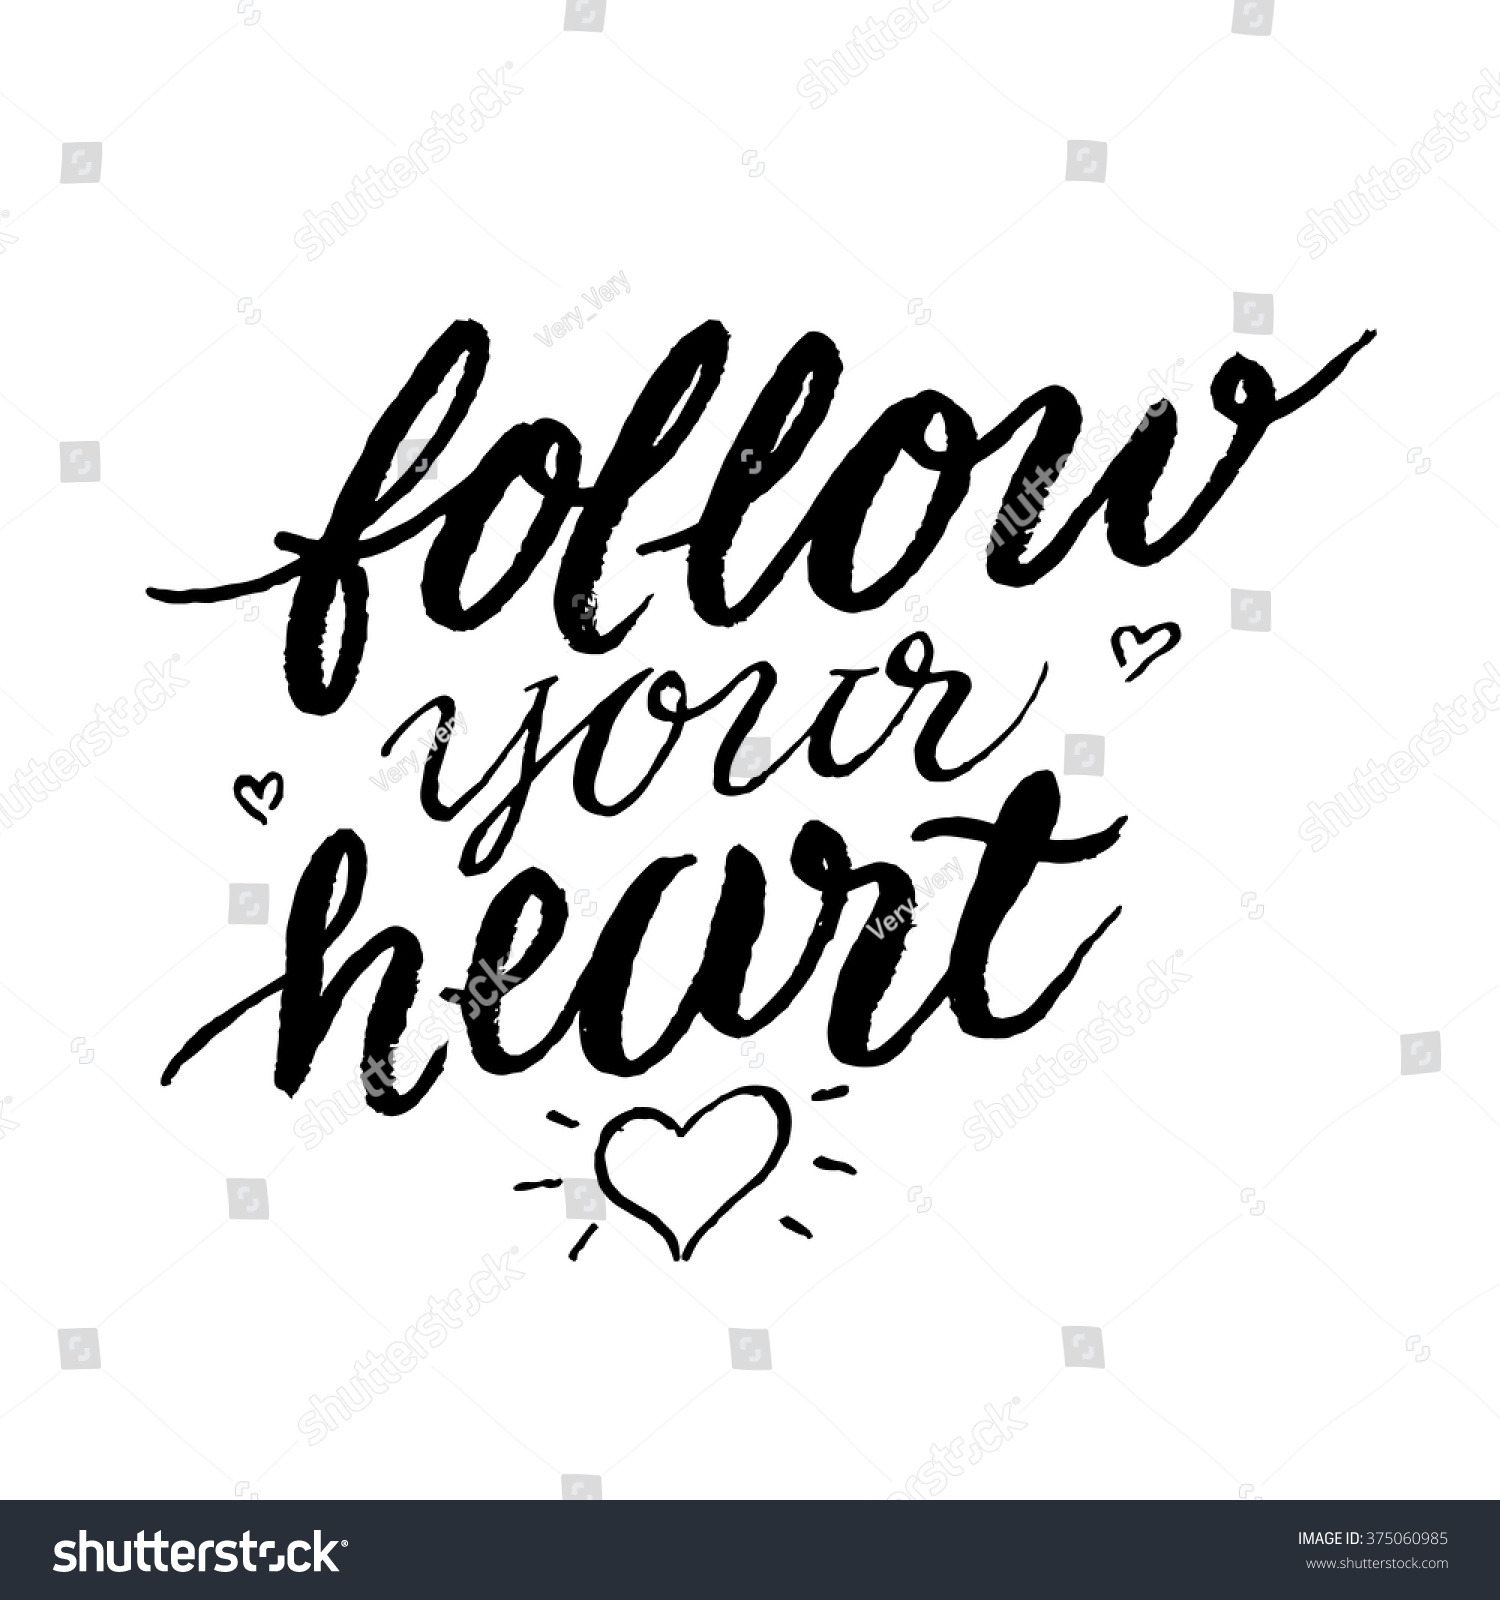 Follow Your Heart Follow Your Heart Inspirational Motivational Quotes Stock